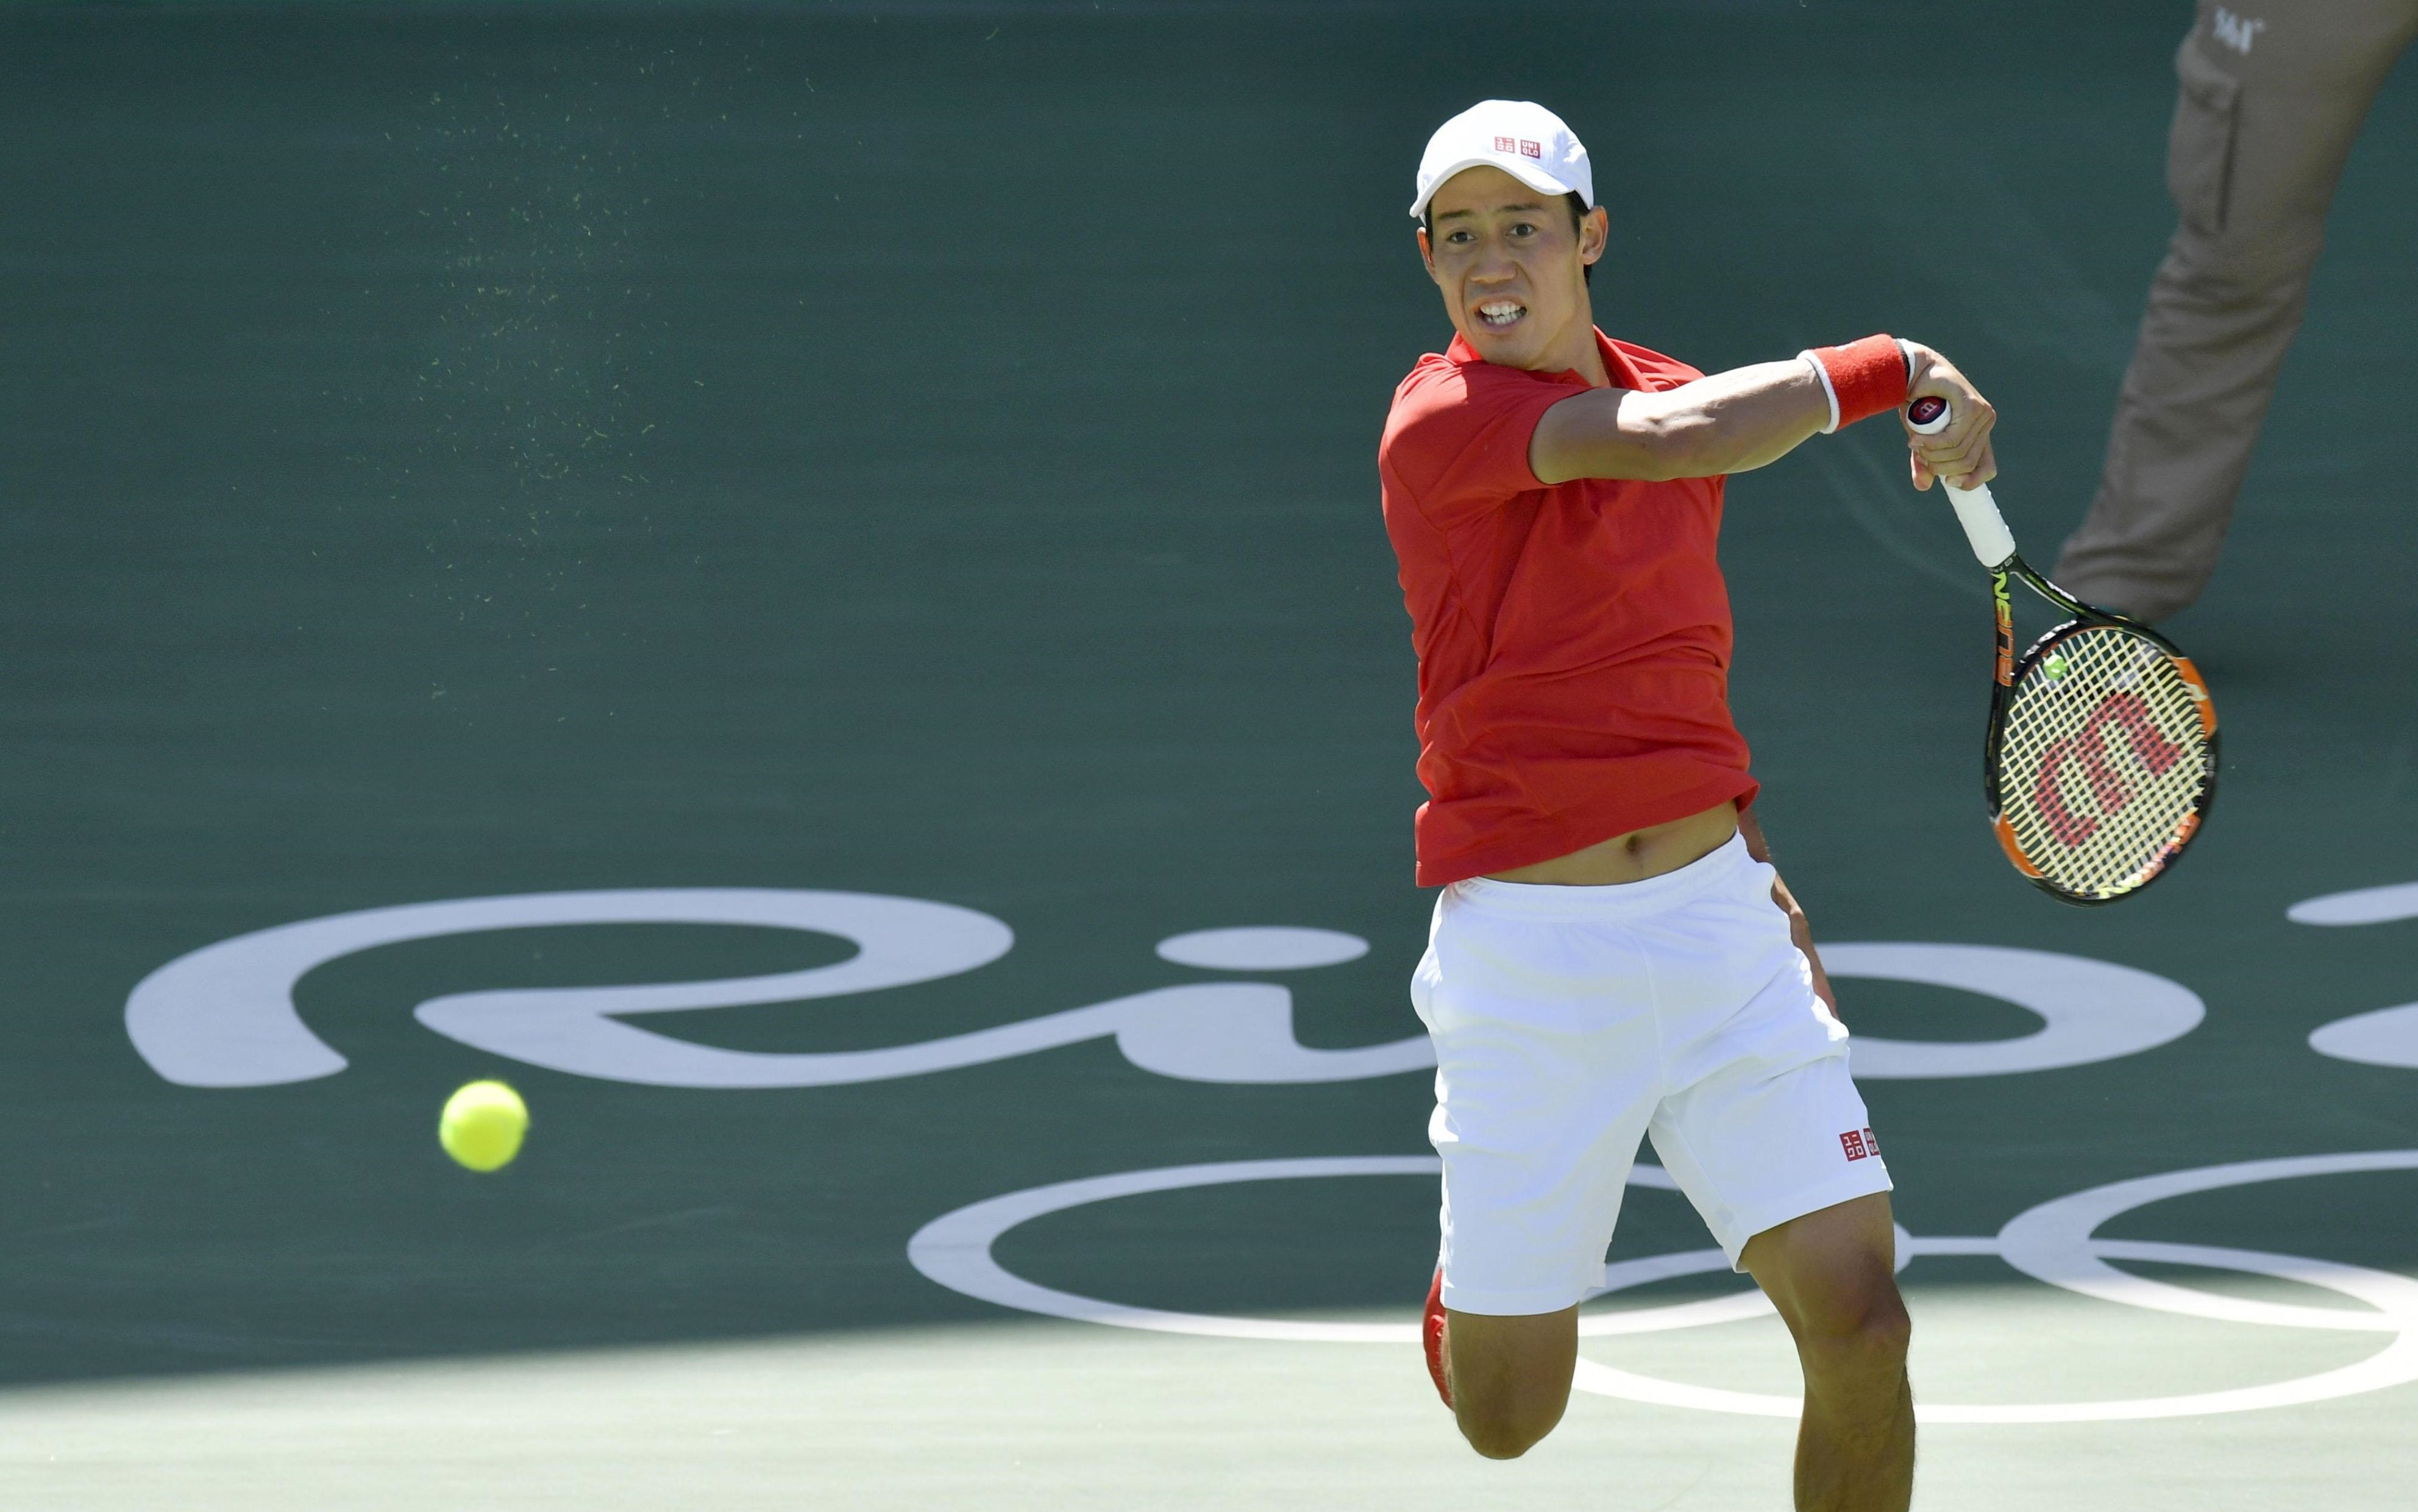 Kei Nishikori returns a shot during a 6-1, 6-4 loss to Andy Murray in the semifinals of the men's singles competition on Saturday at the 2016 Rio Olympics. | KYODO